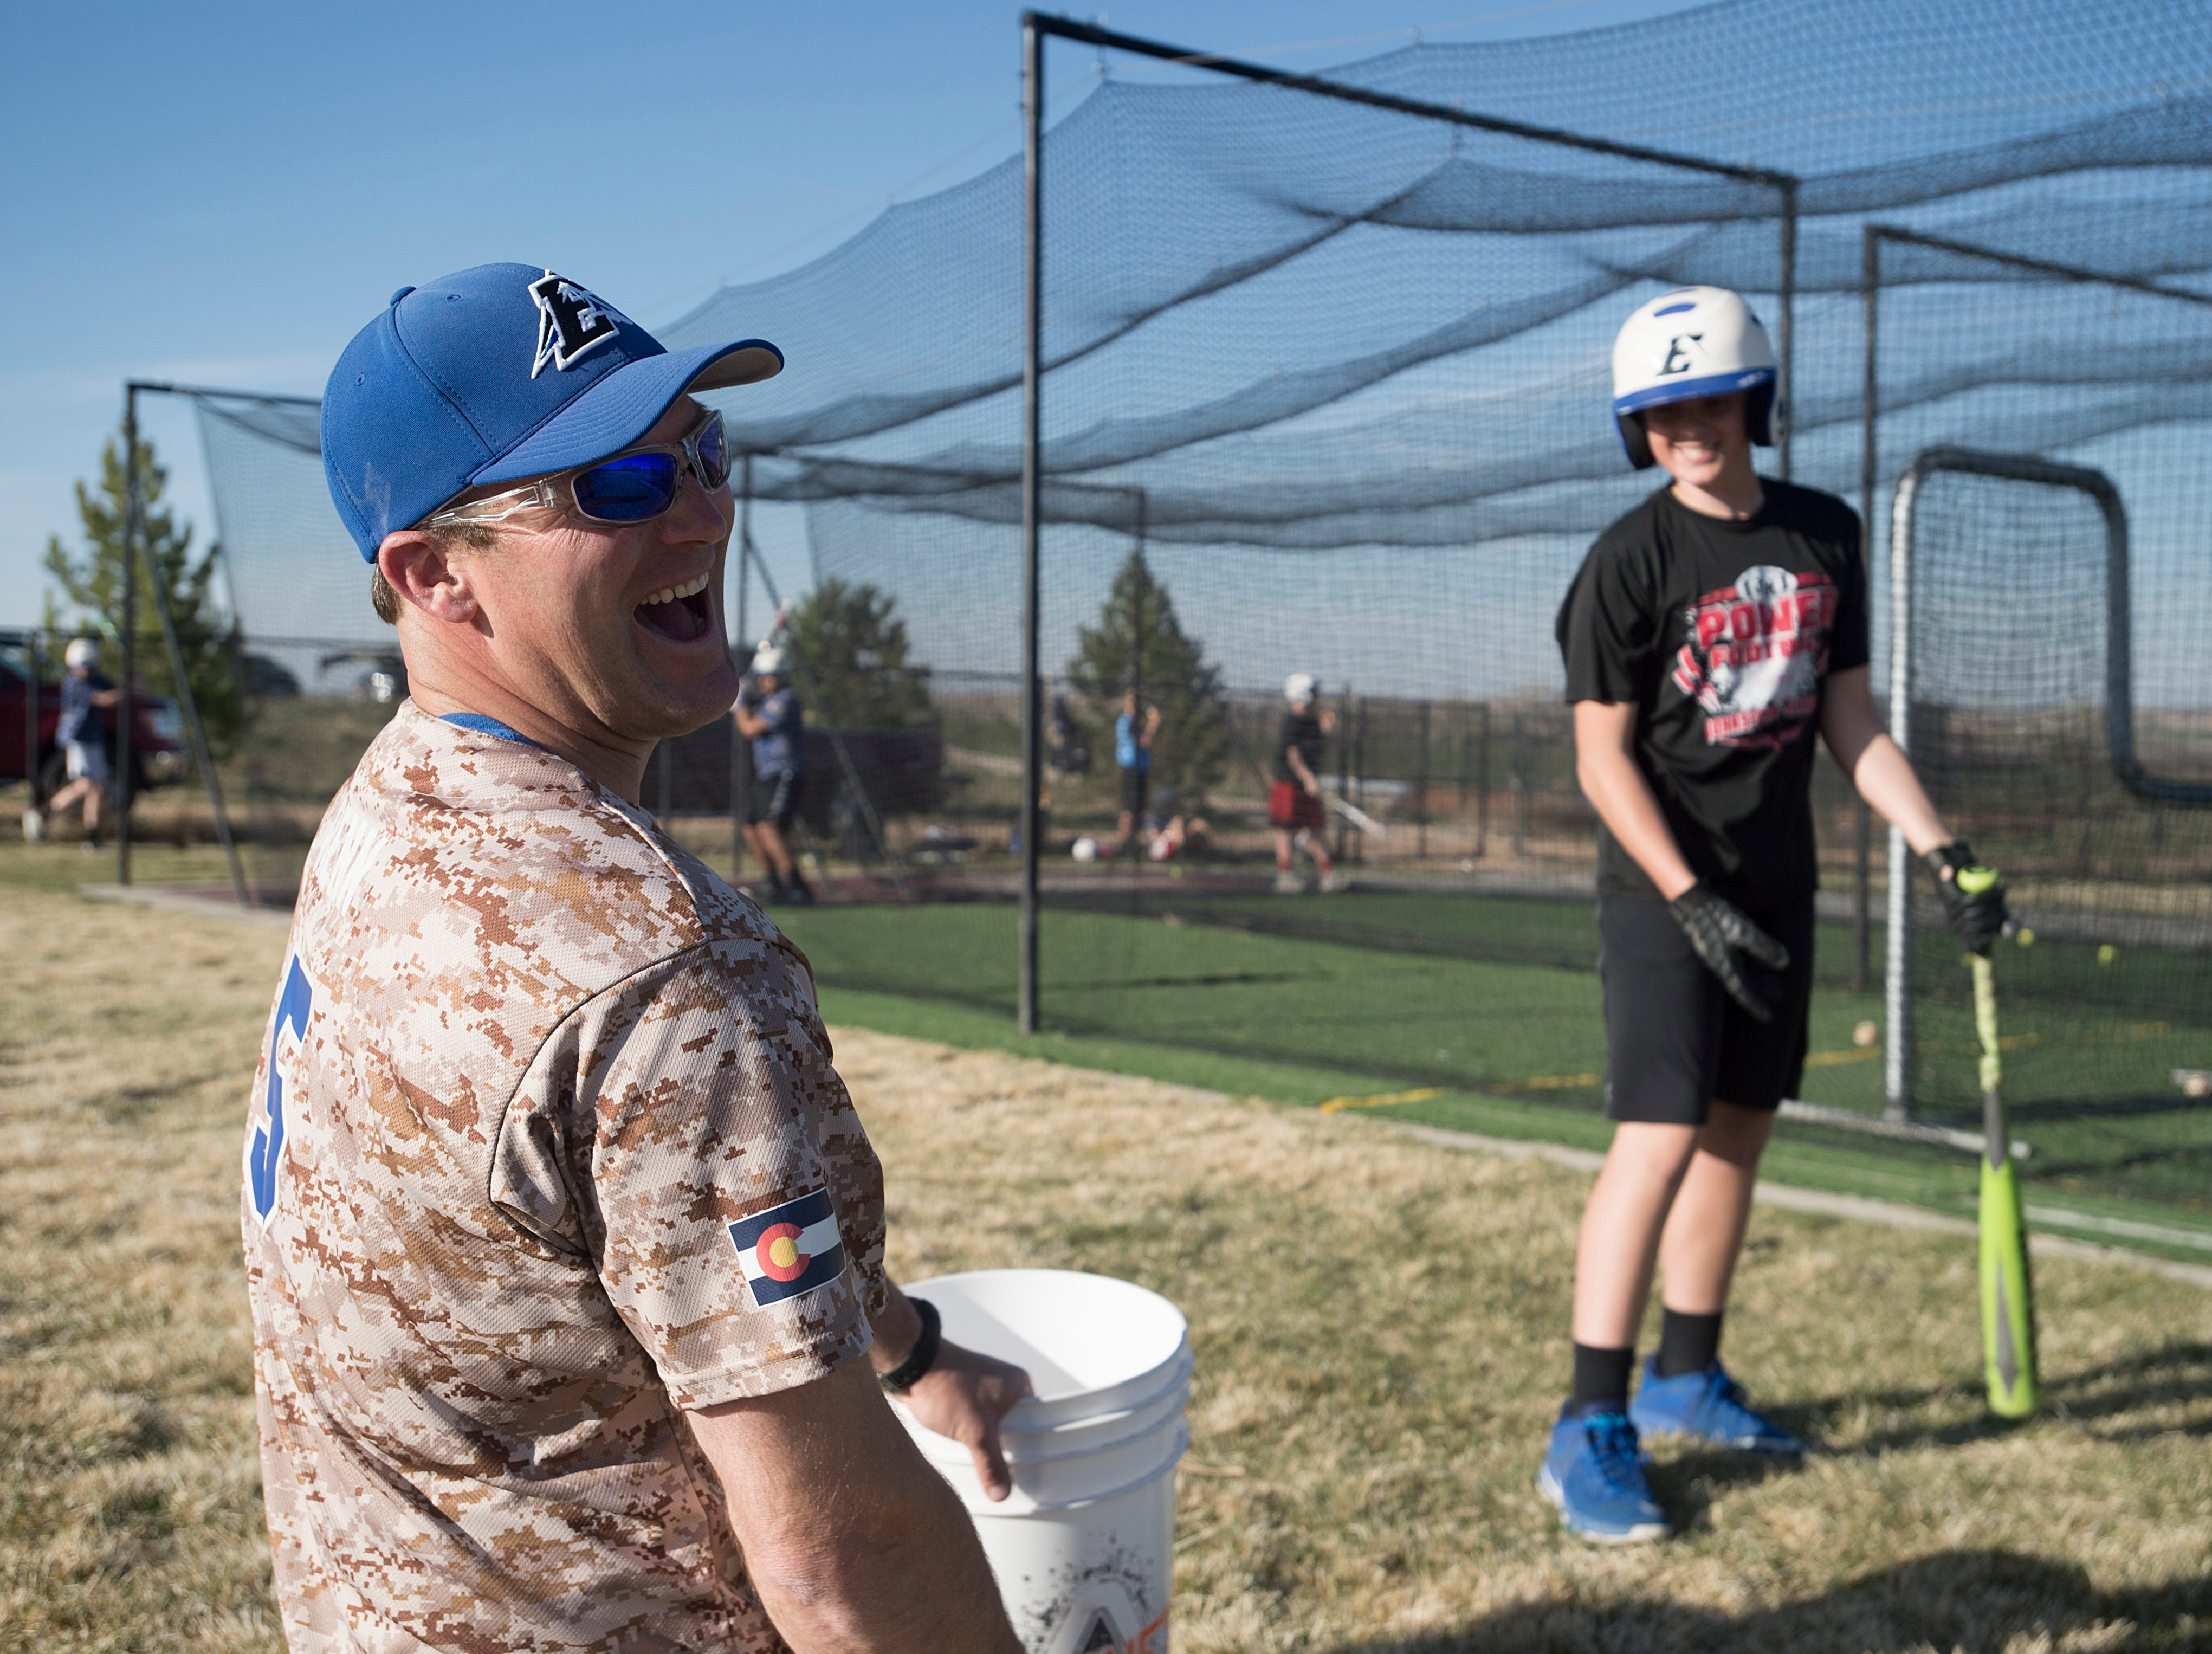 Chris Renn has a laugh with one of his players during batting practice at Nelson Farm Ball Park in Johnstown on Wednesday, April 25, 2018. Renn is head coach of the youth club team.